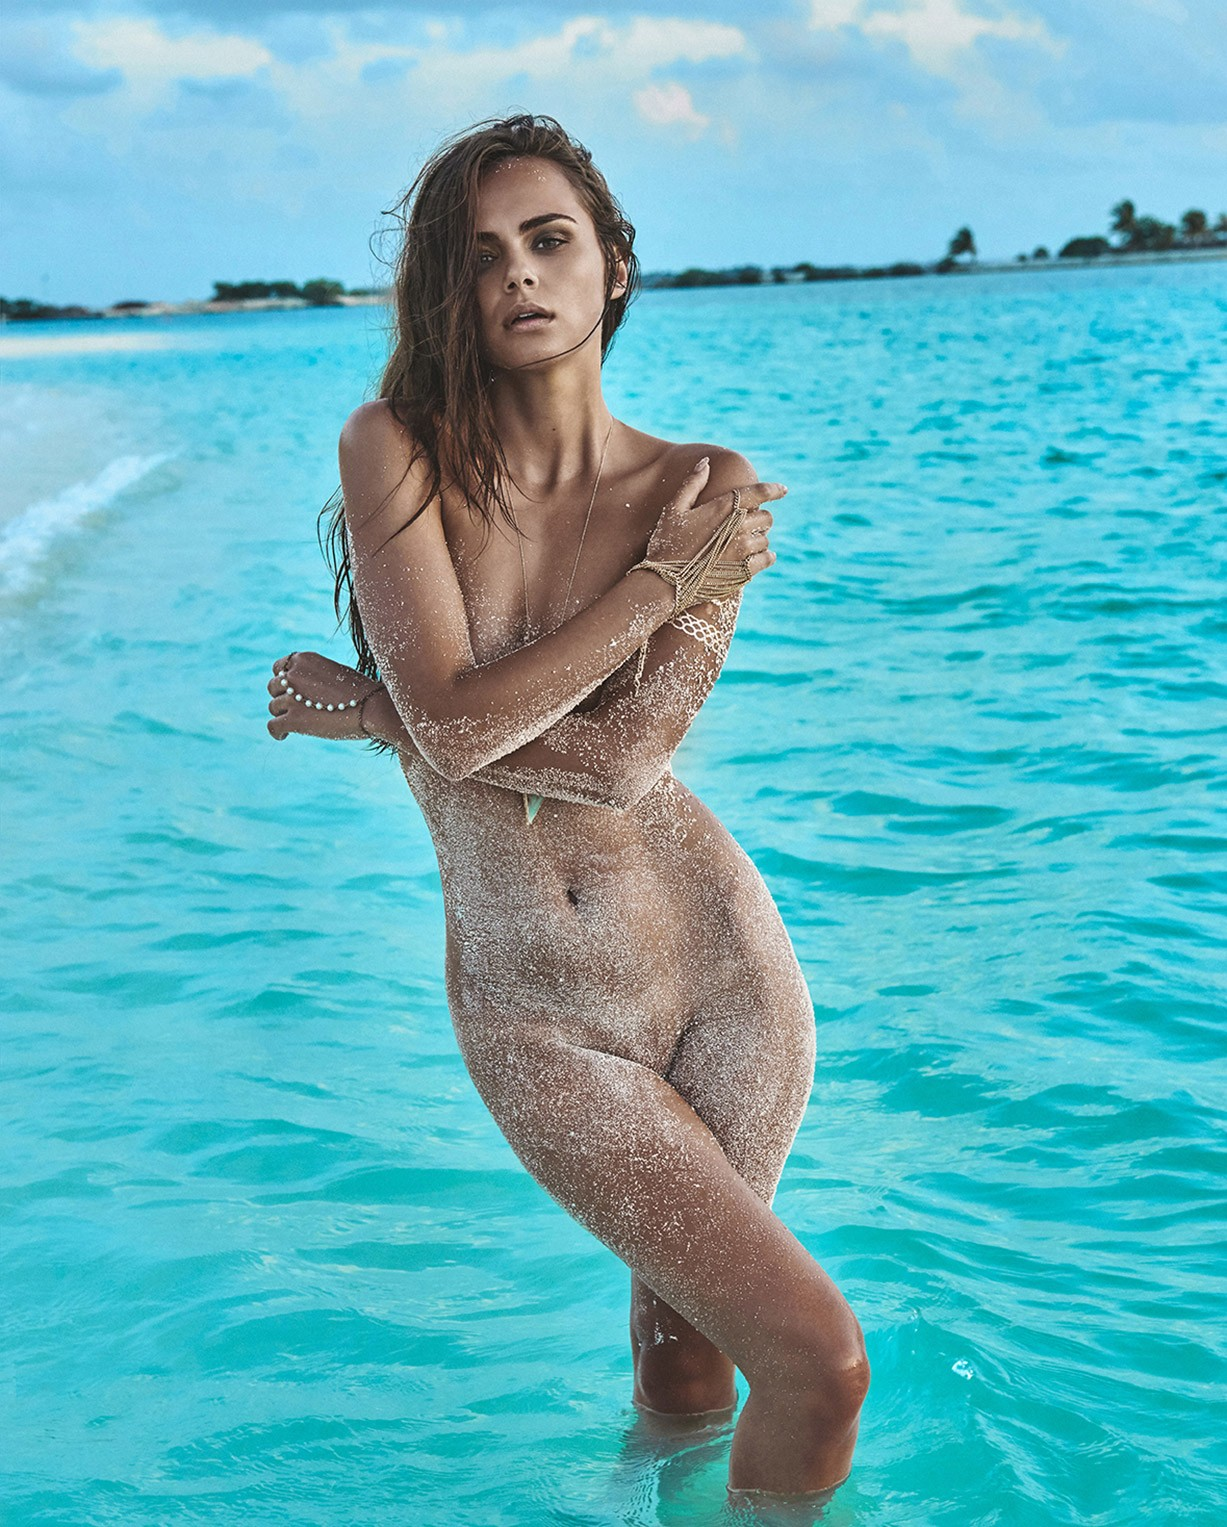 Ксения Дэли / Xenia Deli nude by Jacques Weyers